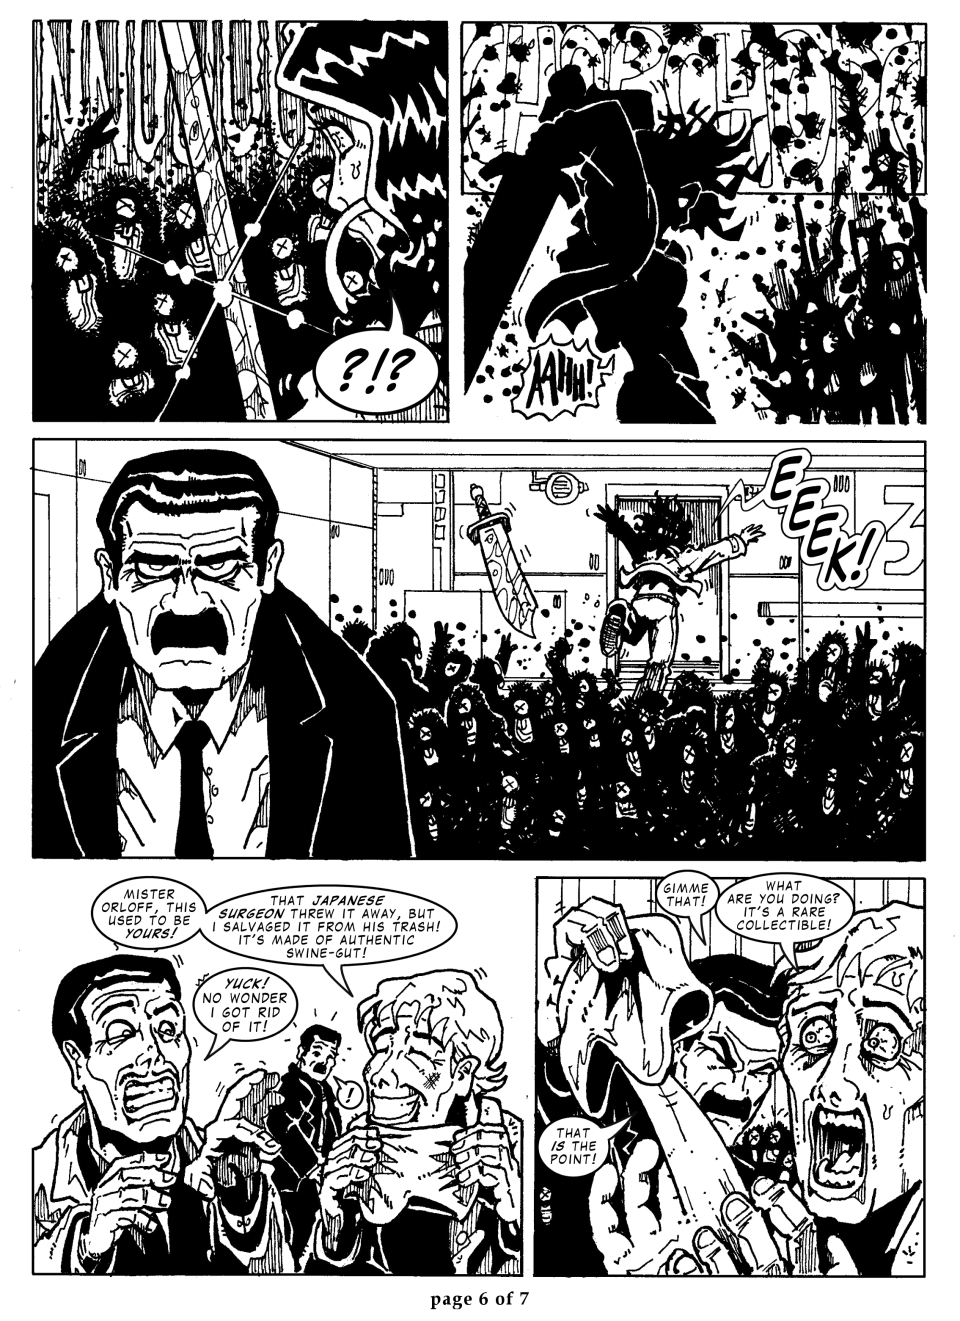 Get A Life 2 - page 6